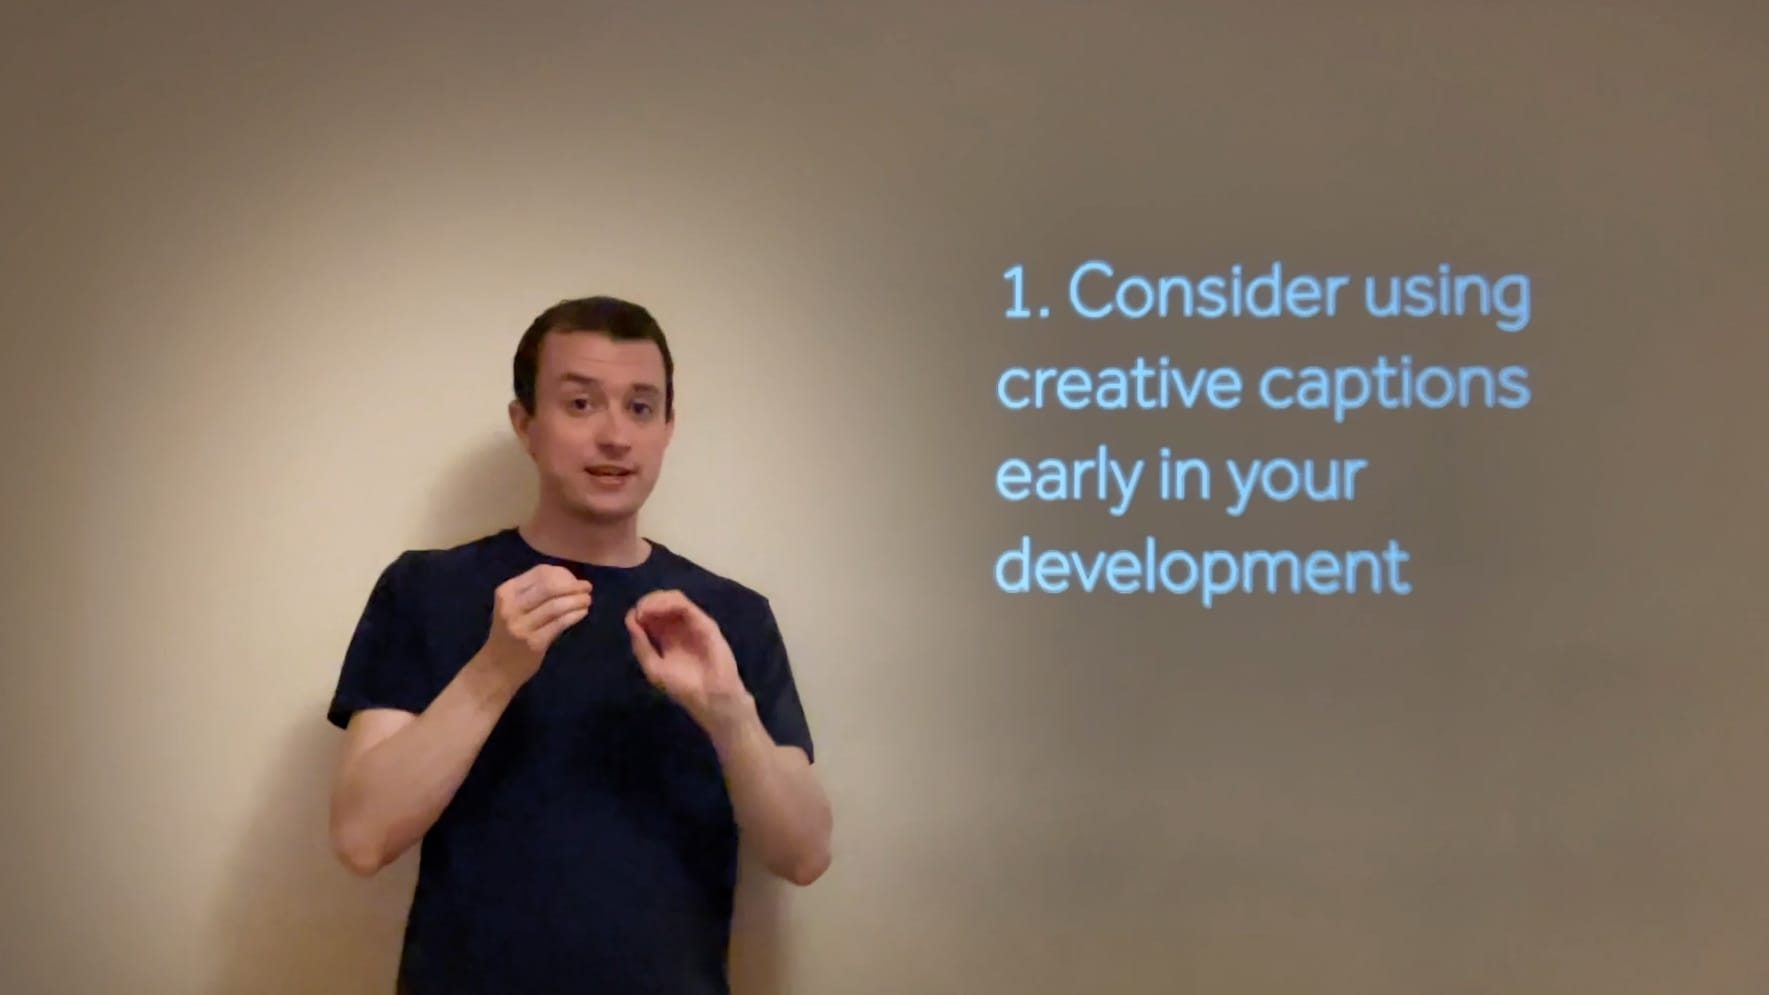 A man signing in front of captions saying 1. Consider using creative captions early in your development